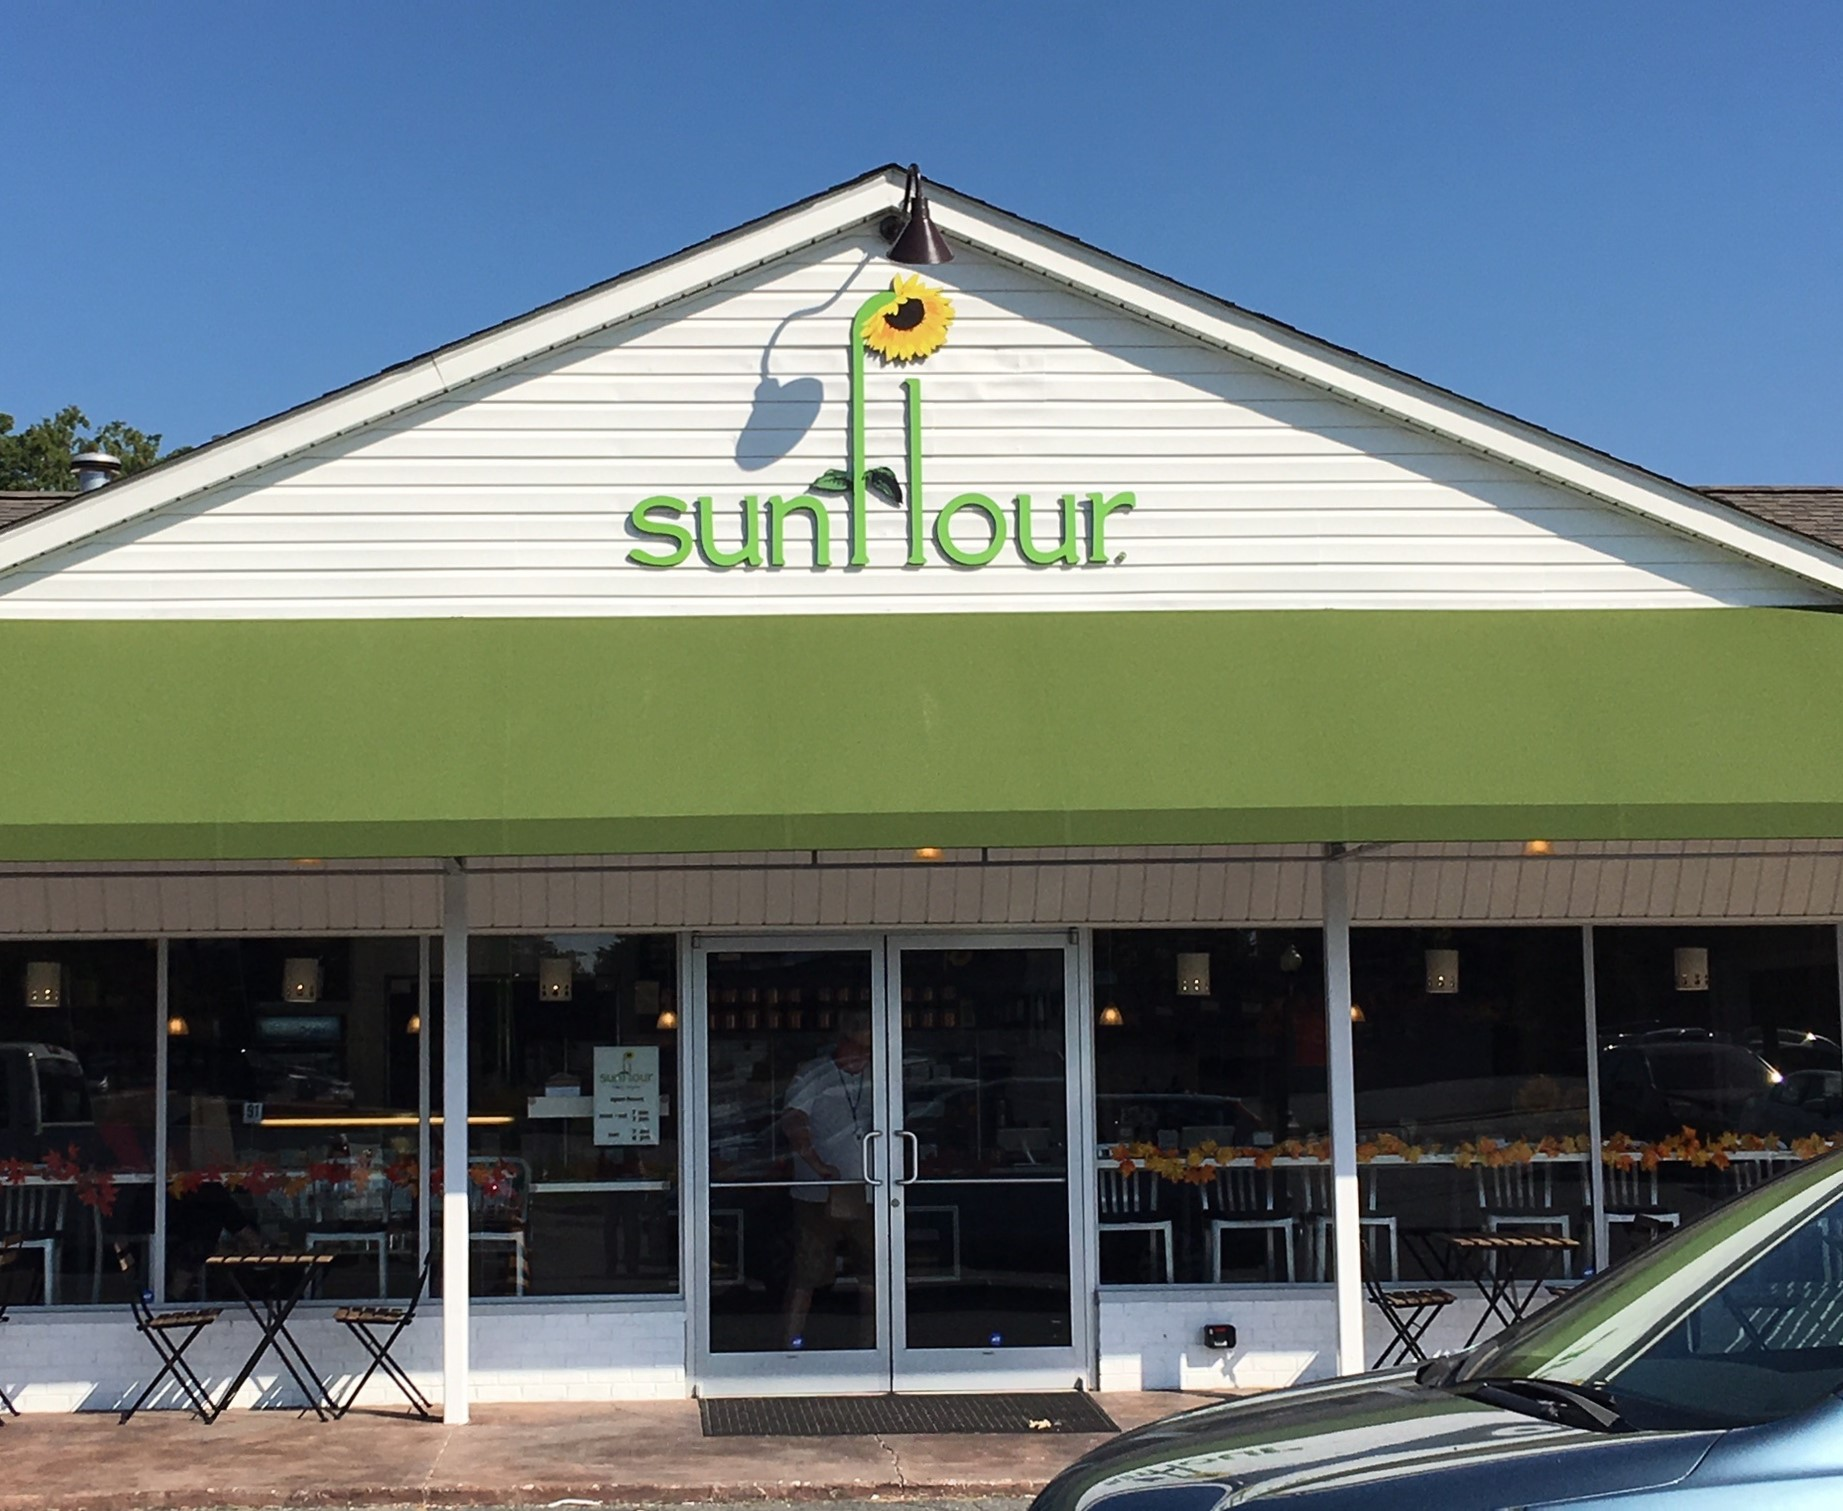 Exterior Signs For Sunflour Baking Company Of Harrisburg